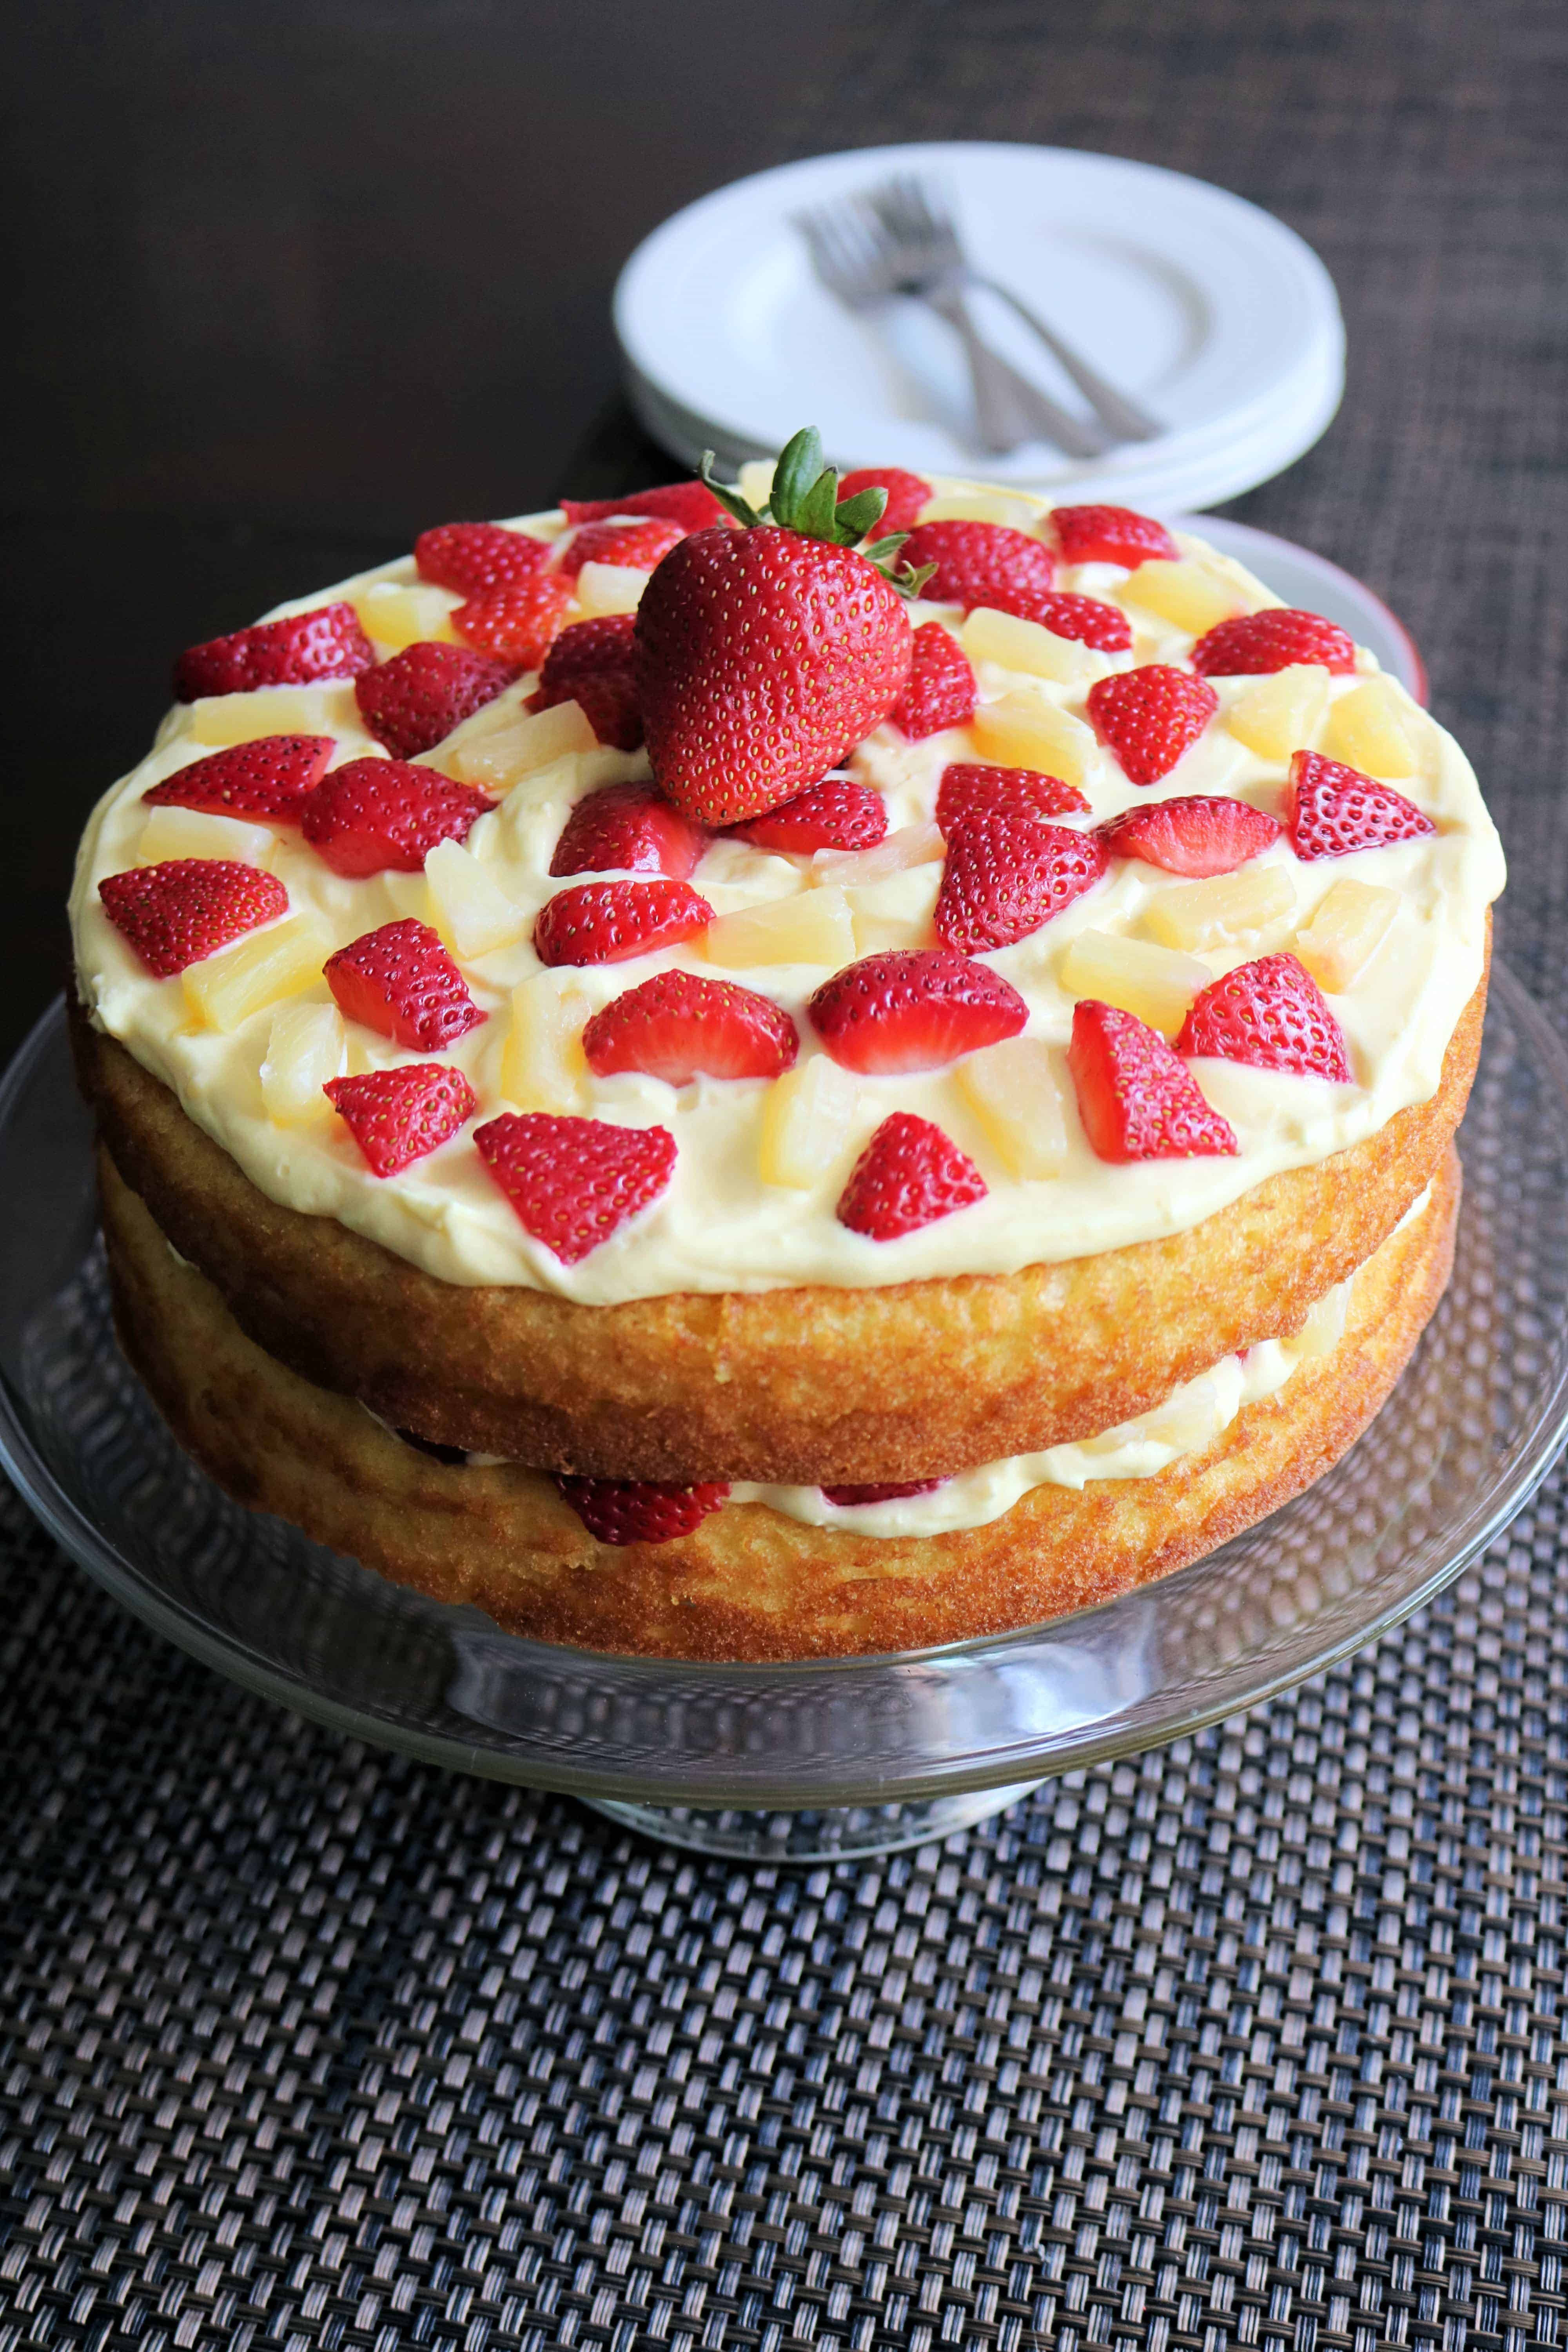 Craving a sweet dessert for your next potluck? Give this Luscious Strawberry Pineapple Cake a try! Made with a yellow cake mix, vanilla pudding, light whipped topping, and fresh strawberries and pineapples, this pineapple cake is the perfect, easy summer-time treat with a tropical twist! #cake #strawberry #pineapple #sweets #dessert